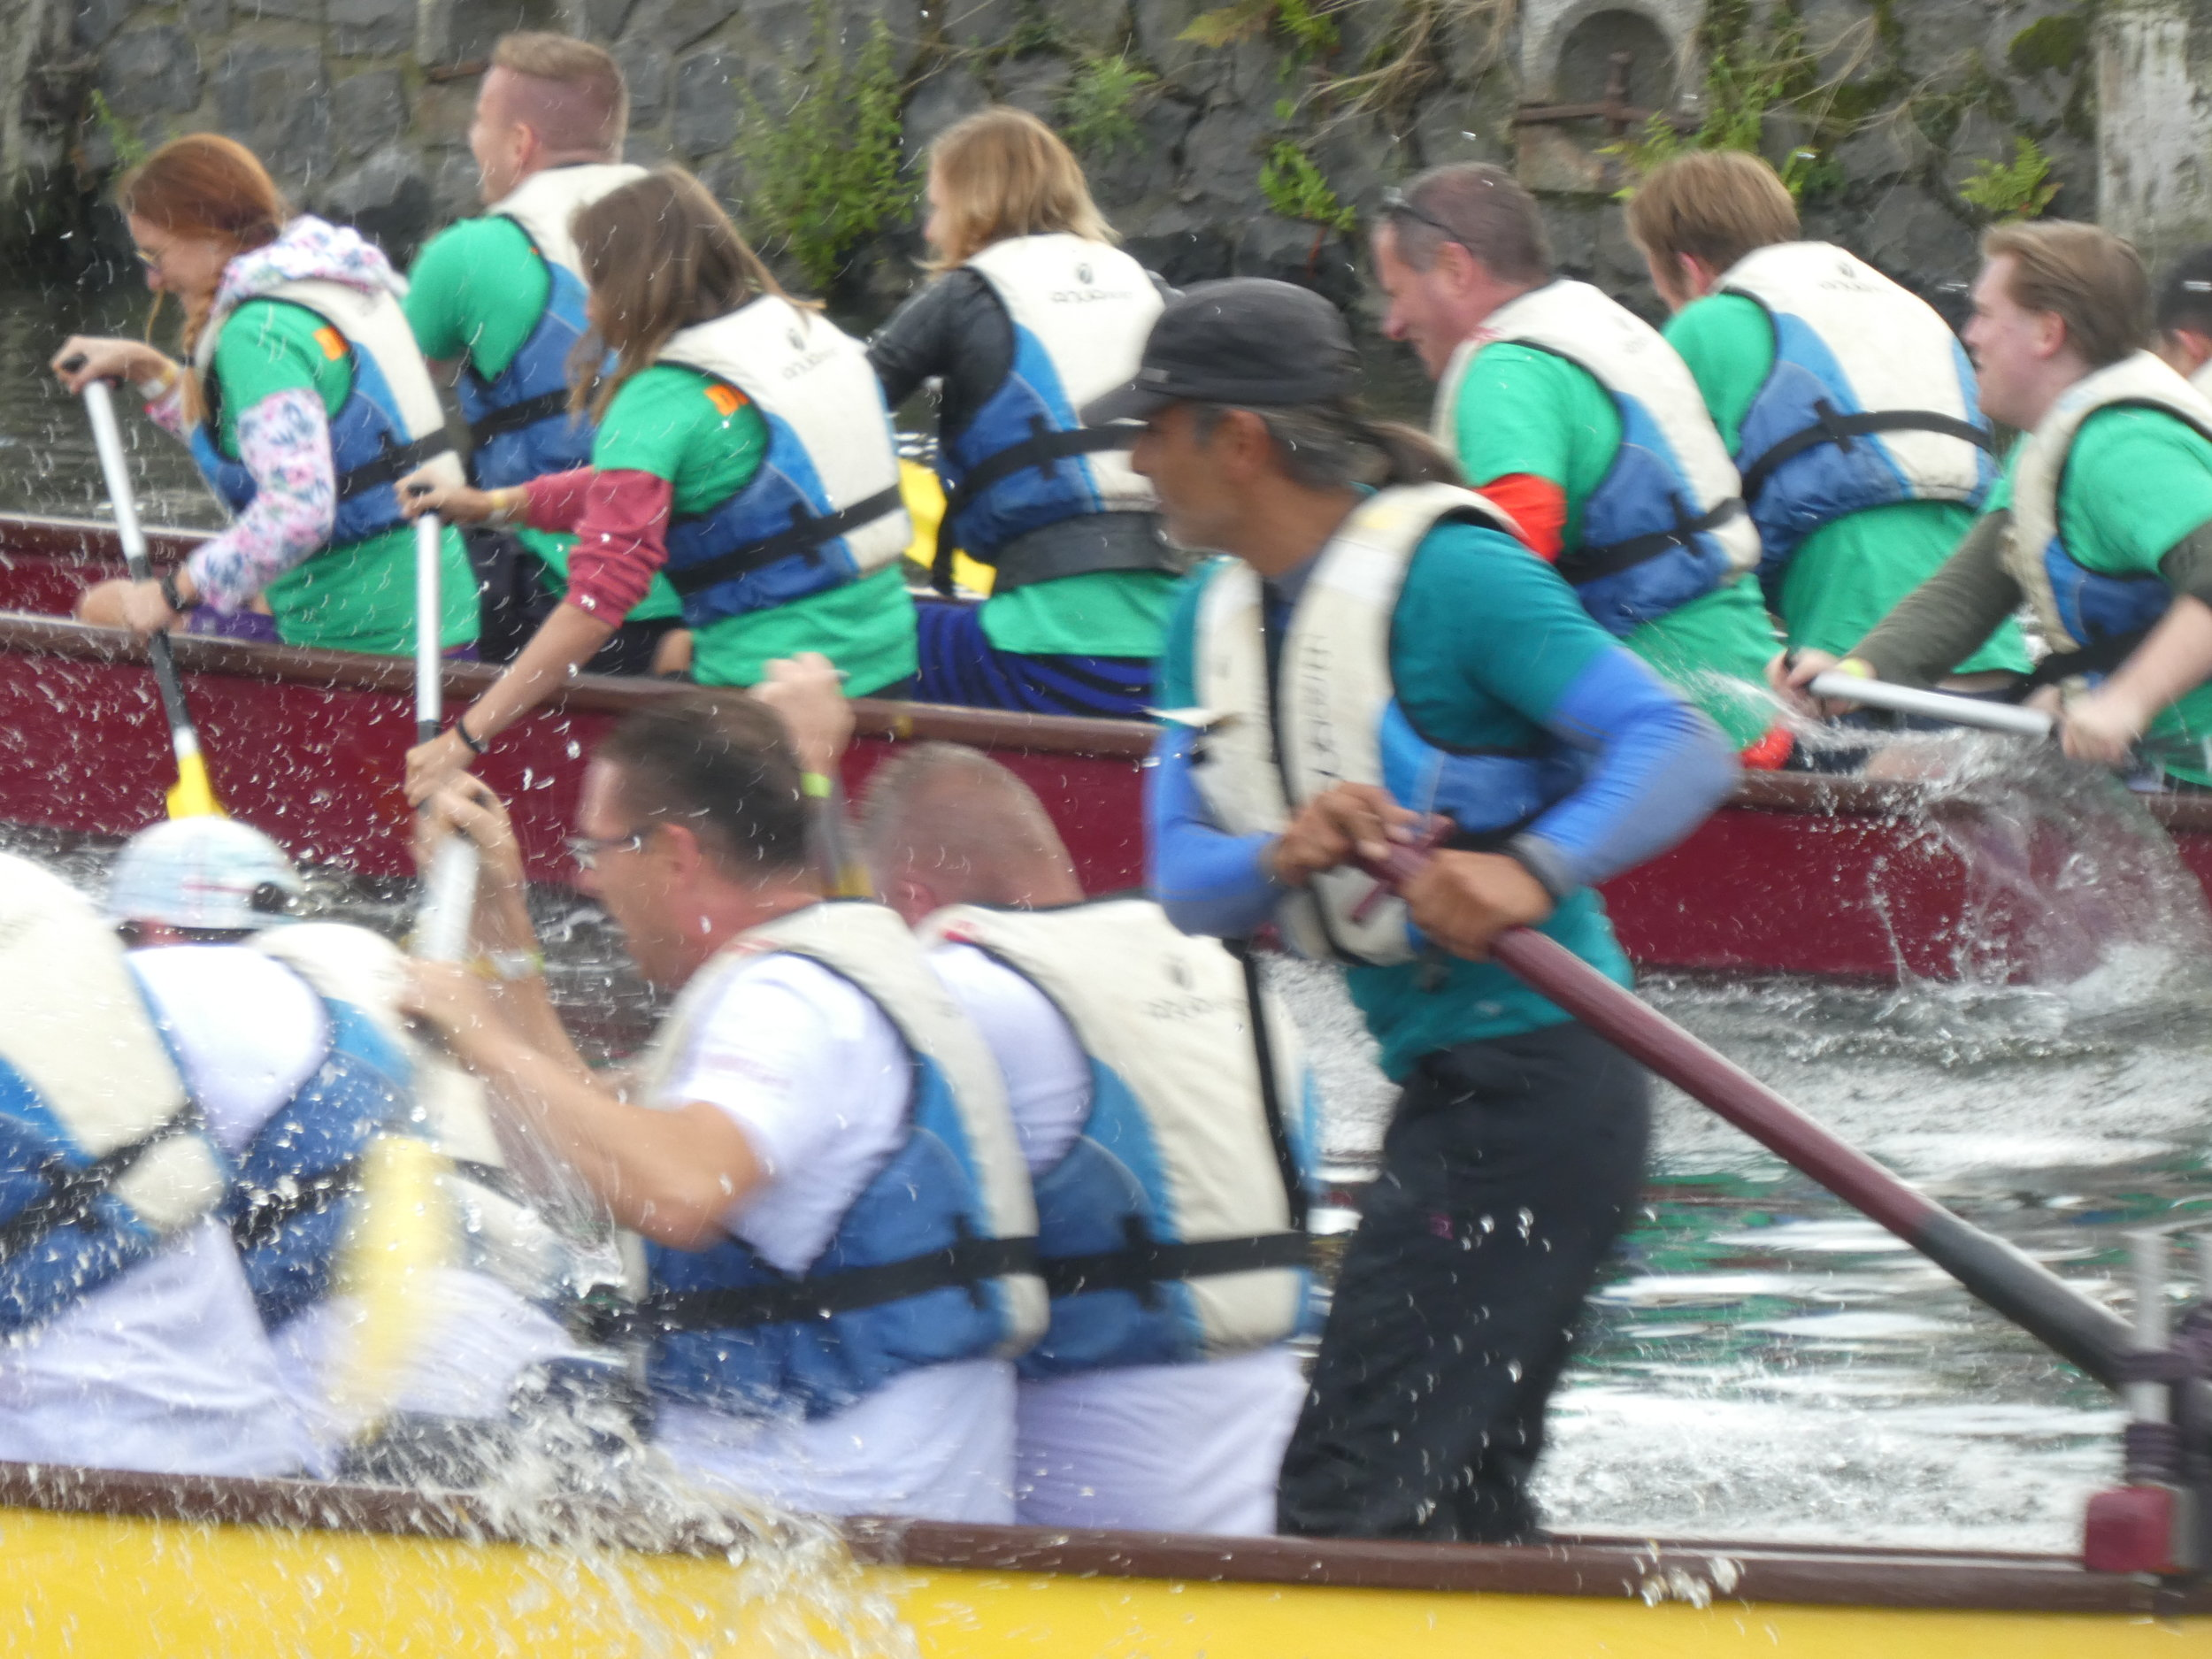 Dutch races of Dragonboats are equally fierce to Chinese ones ...